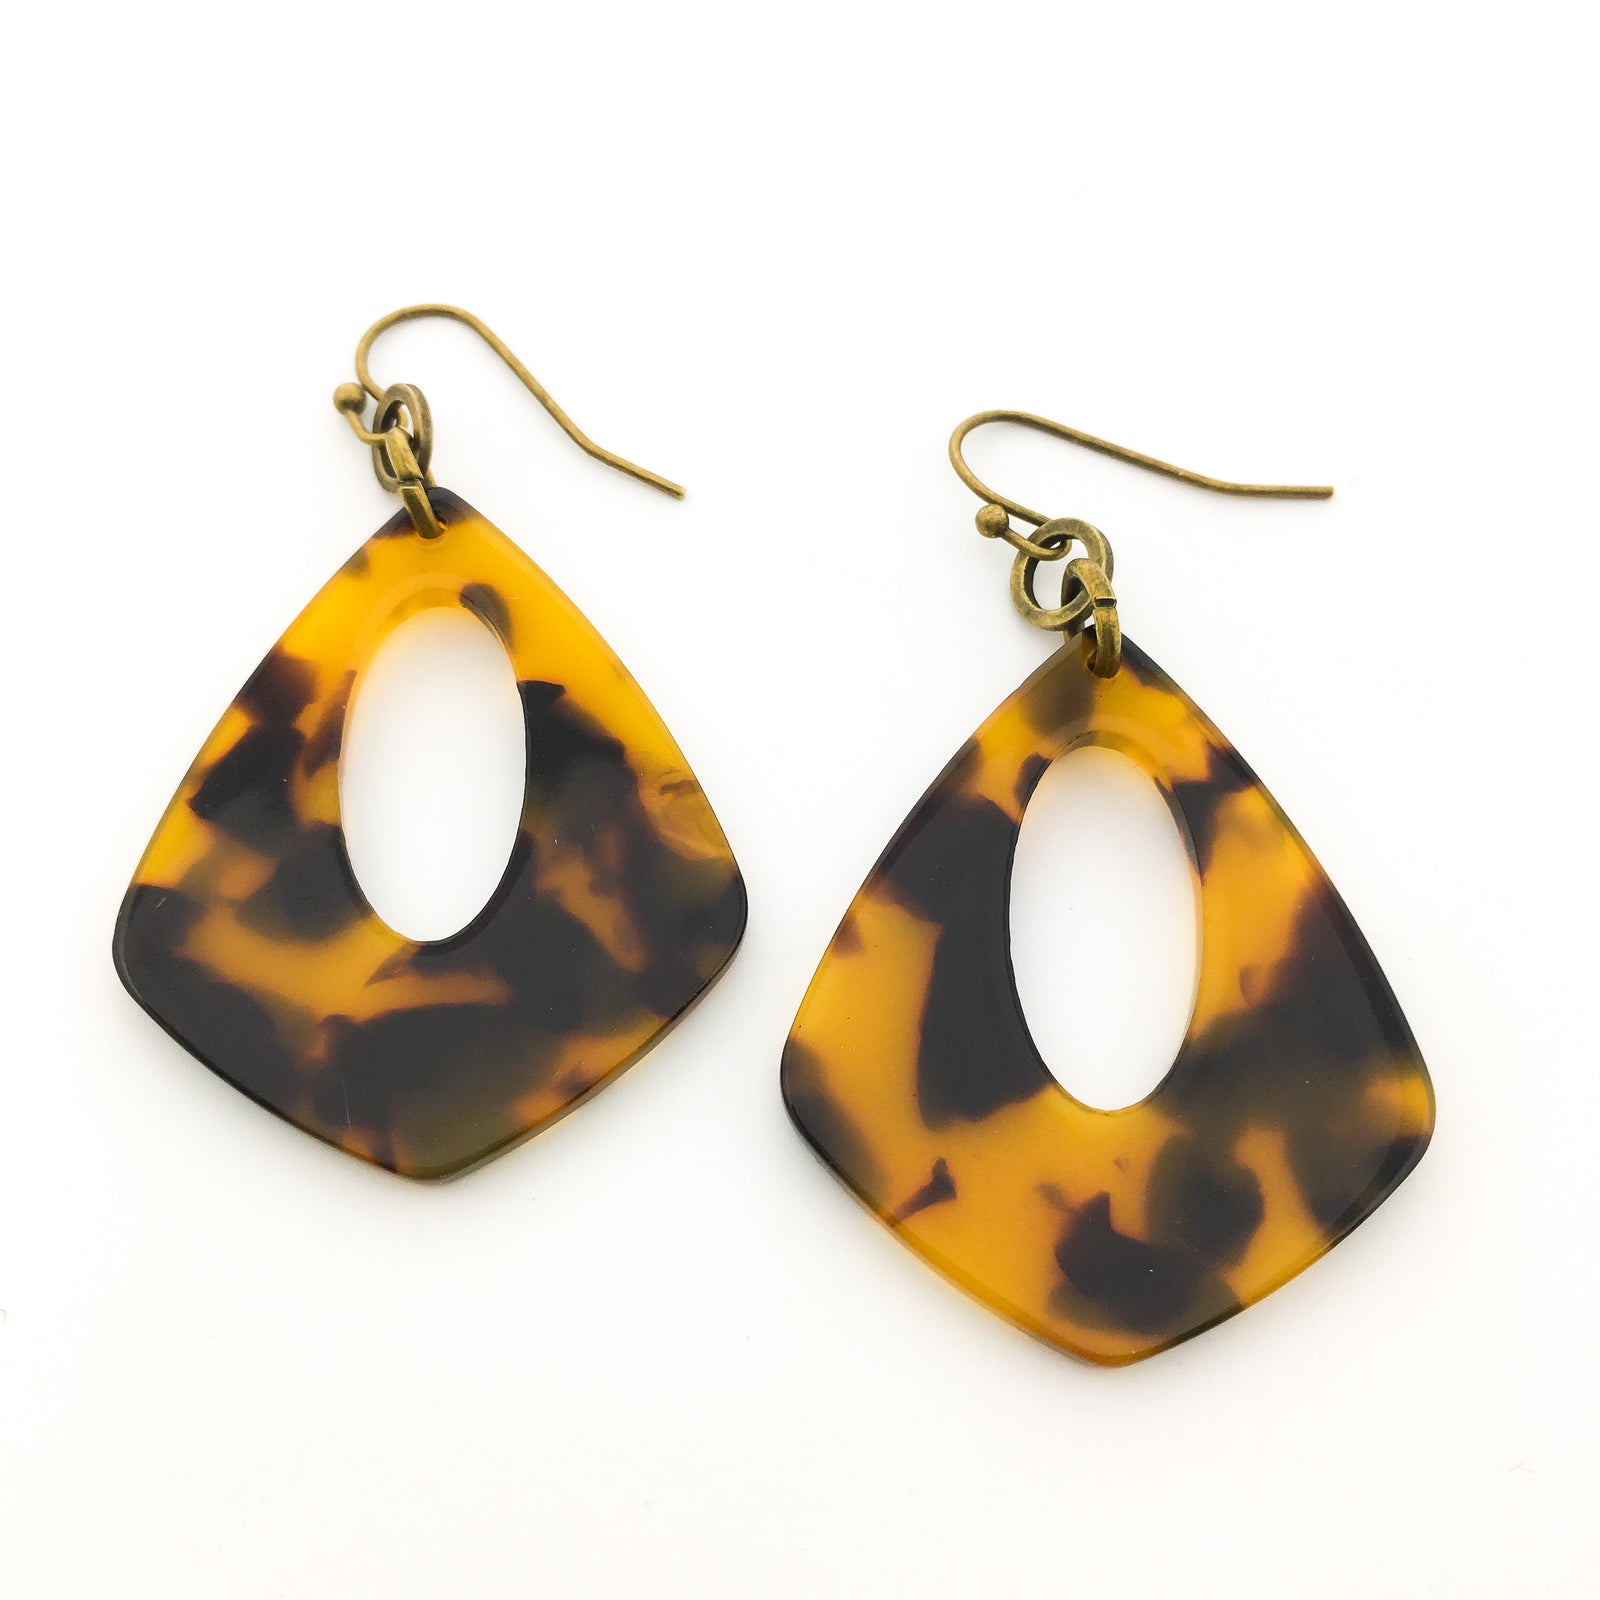 HANGING STONE EARRINGS | STYLE OPTIONS